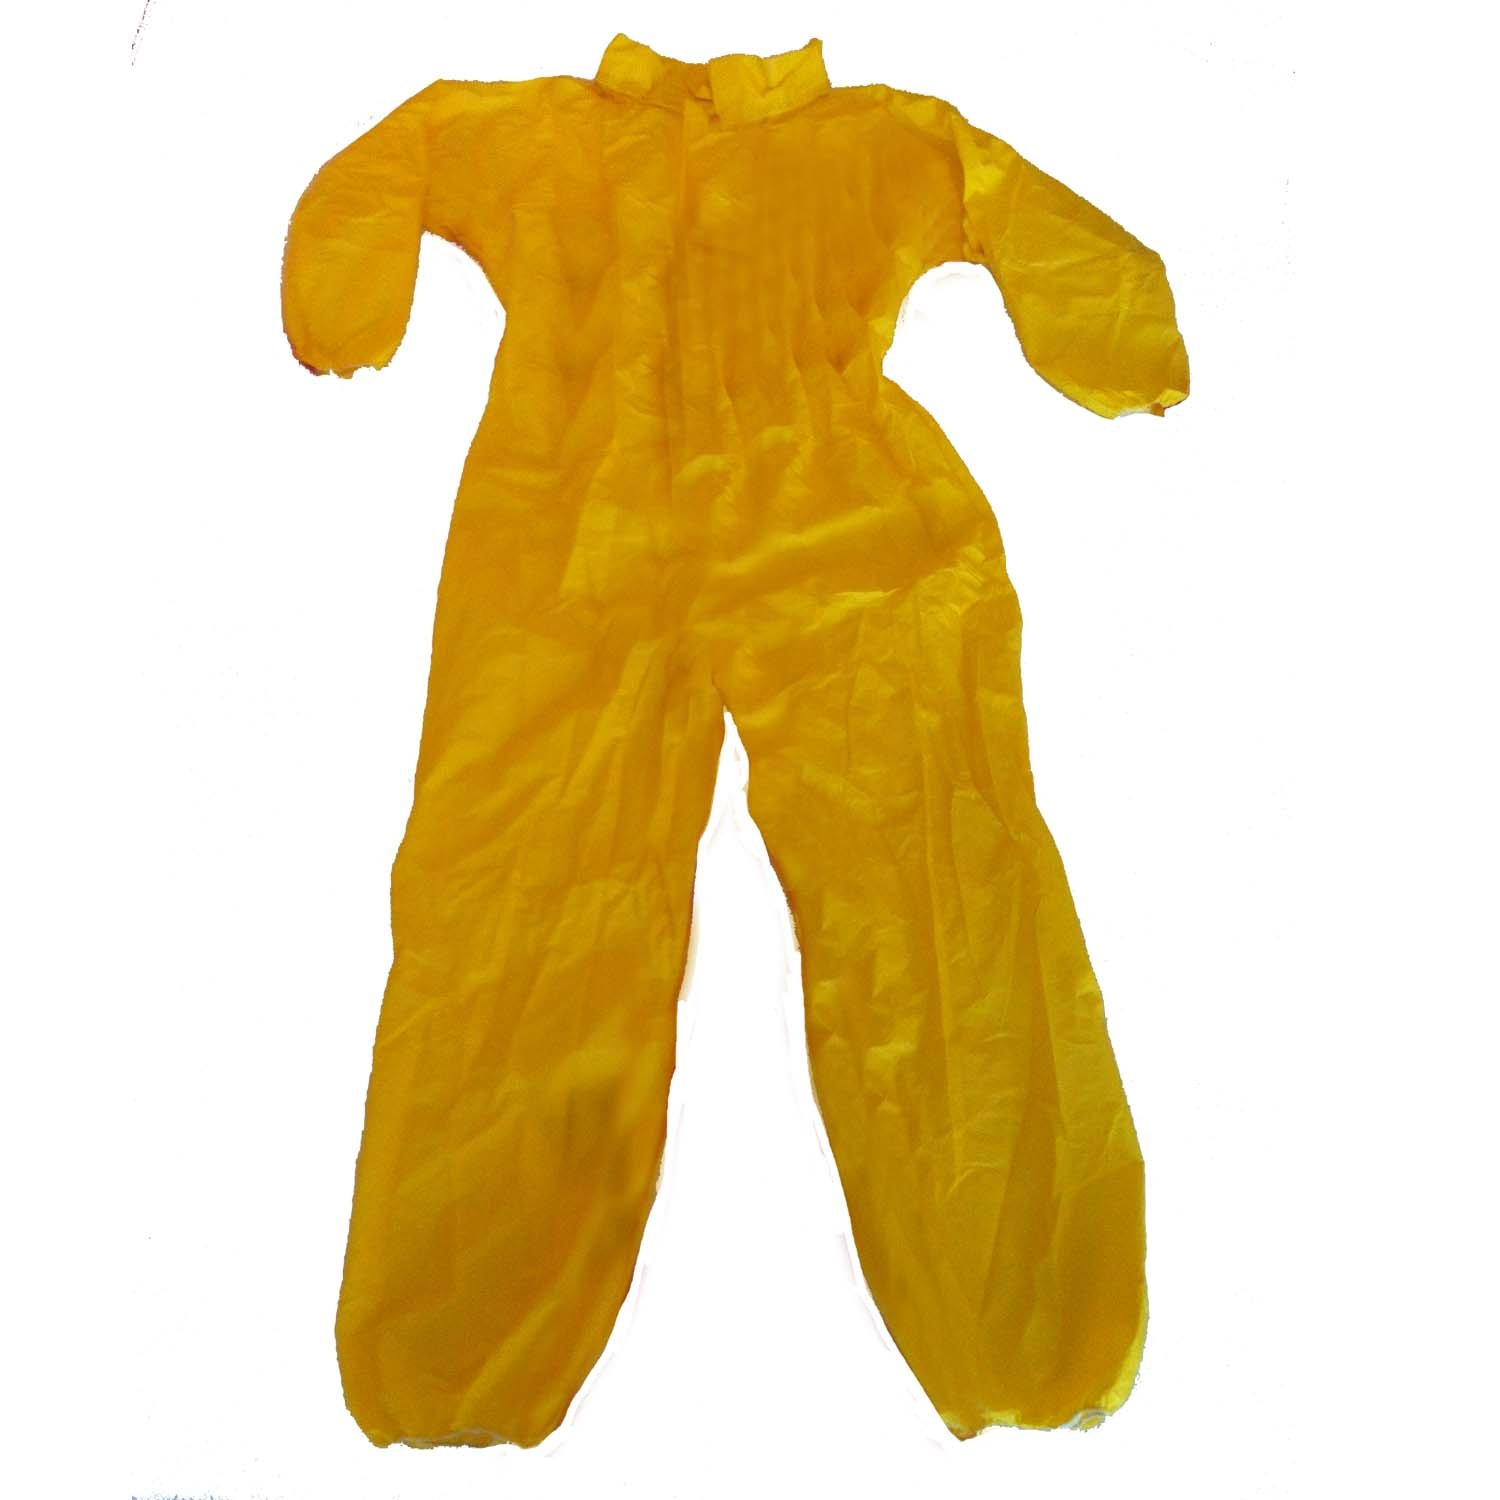 Enviroguard ChemSplash 1 Standard Coverall, Disposable, Elastic Wrists and Open Ankle, Yellow, Large (Case of 12)